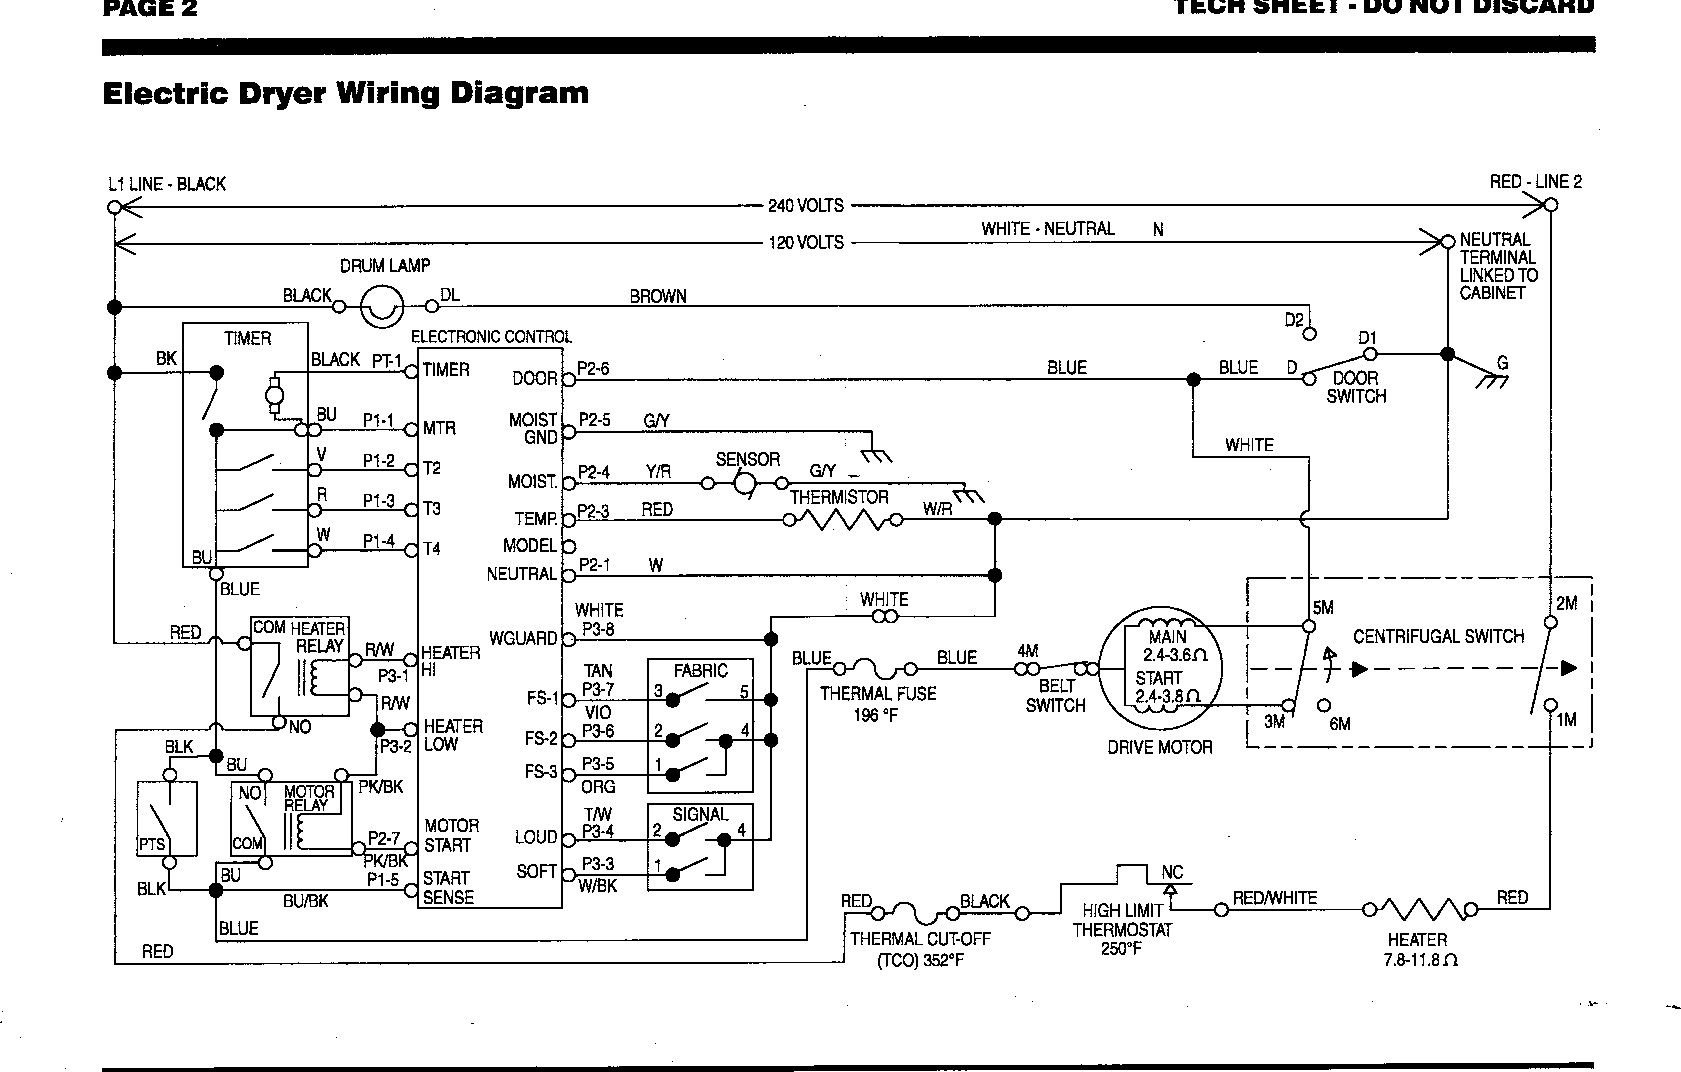 Get    Wiring       Diagram    for Kenmore    Dryer    Model 110 Download